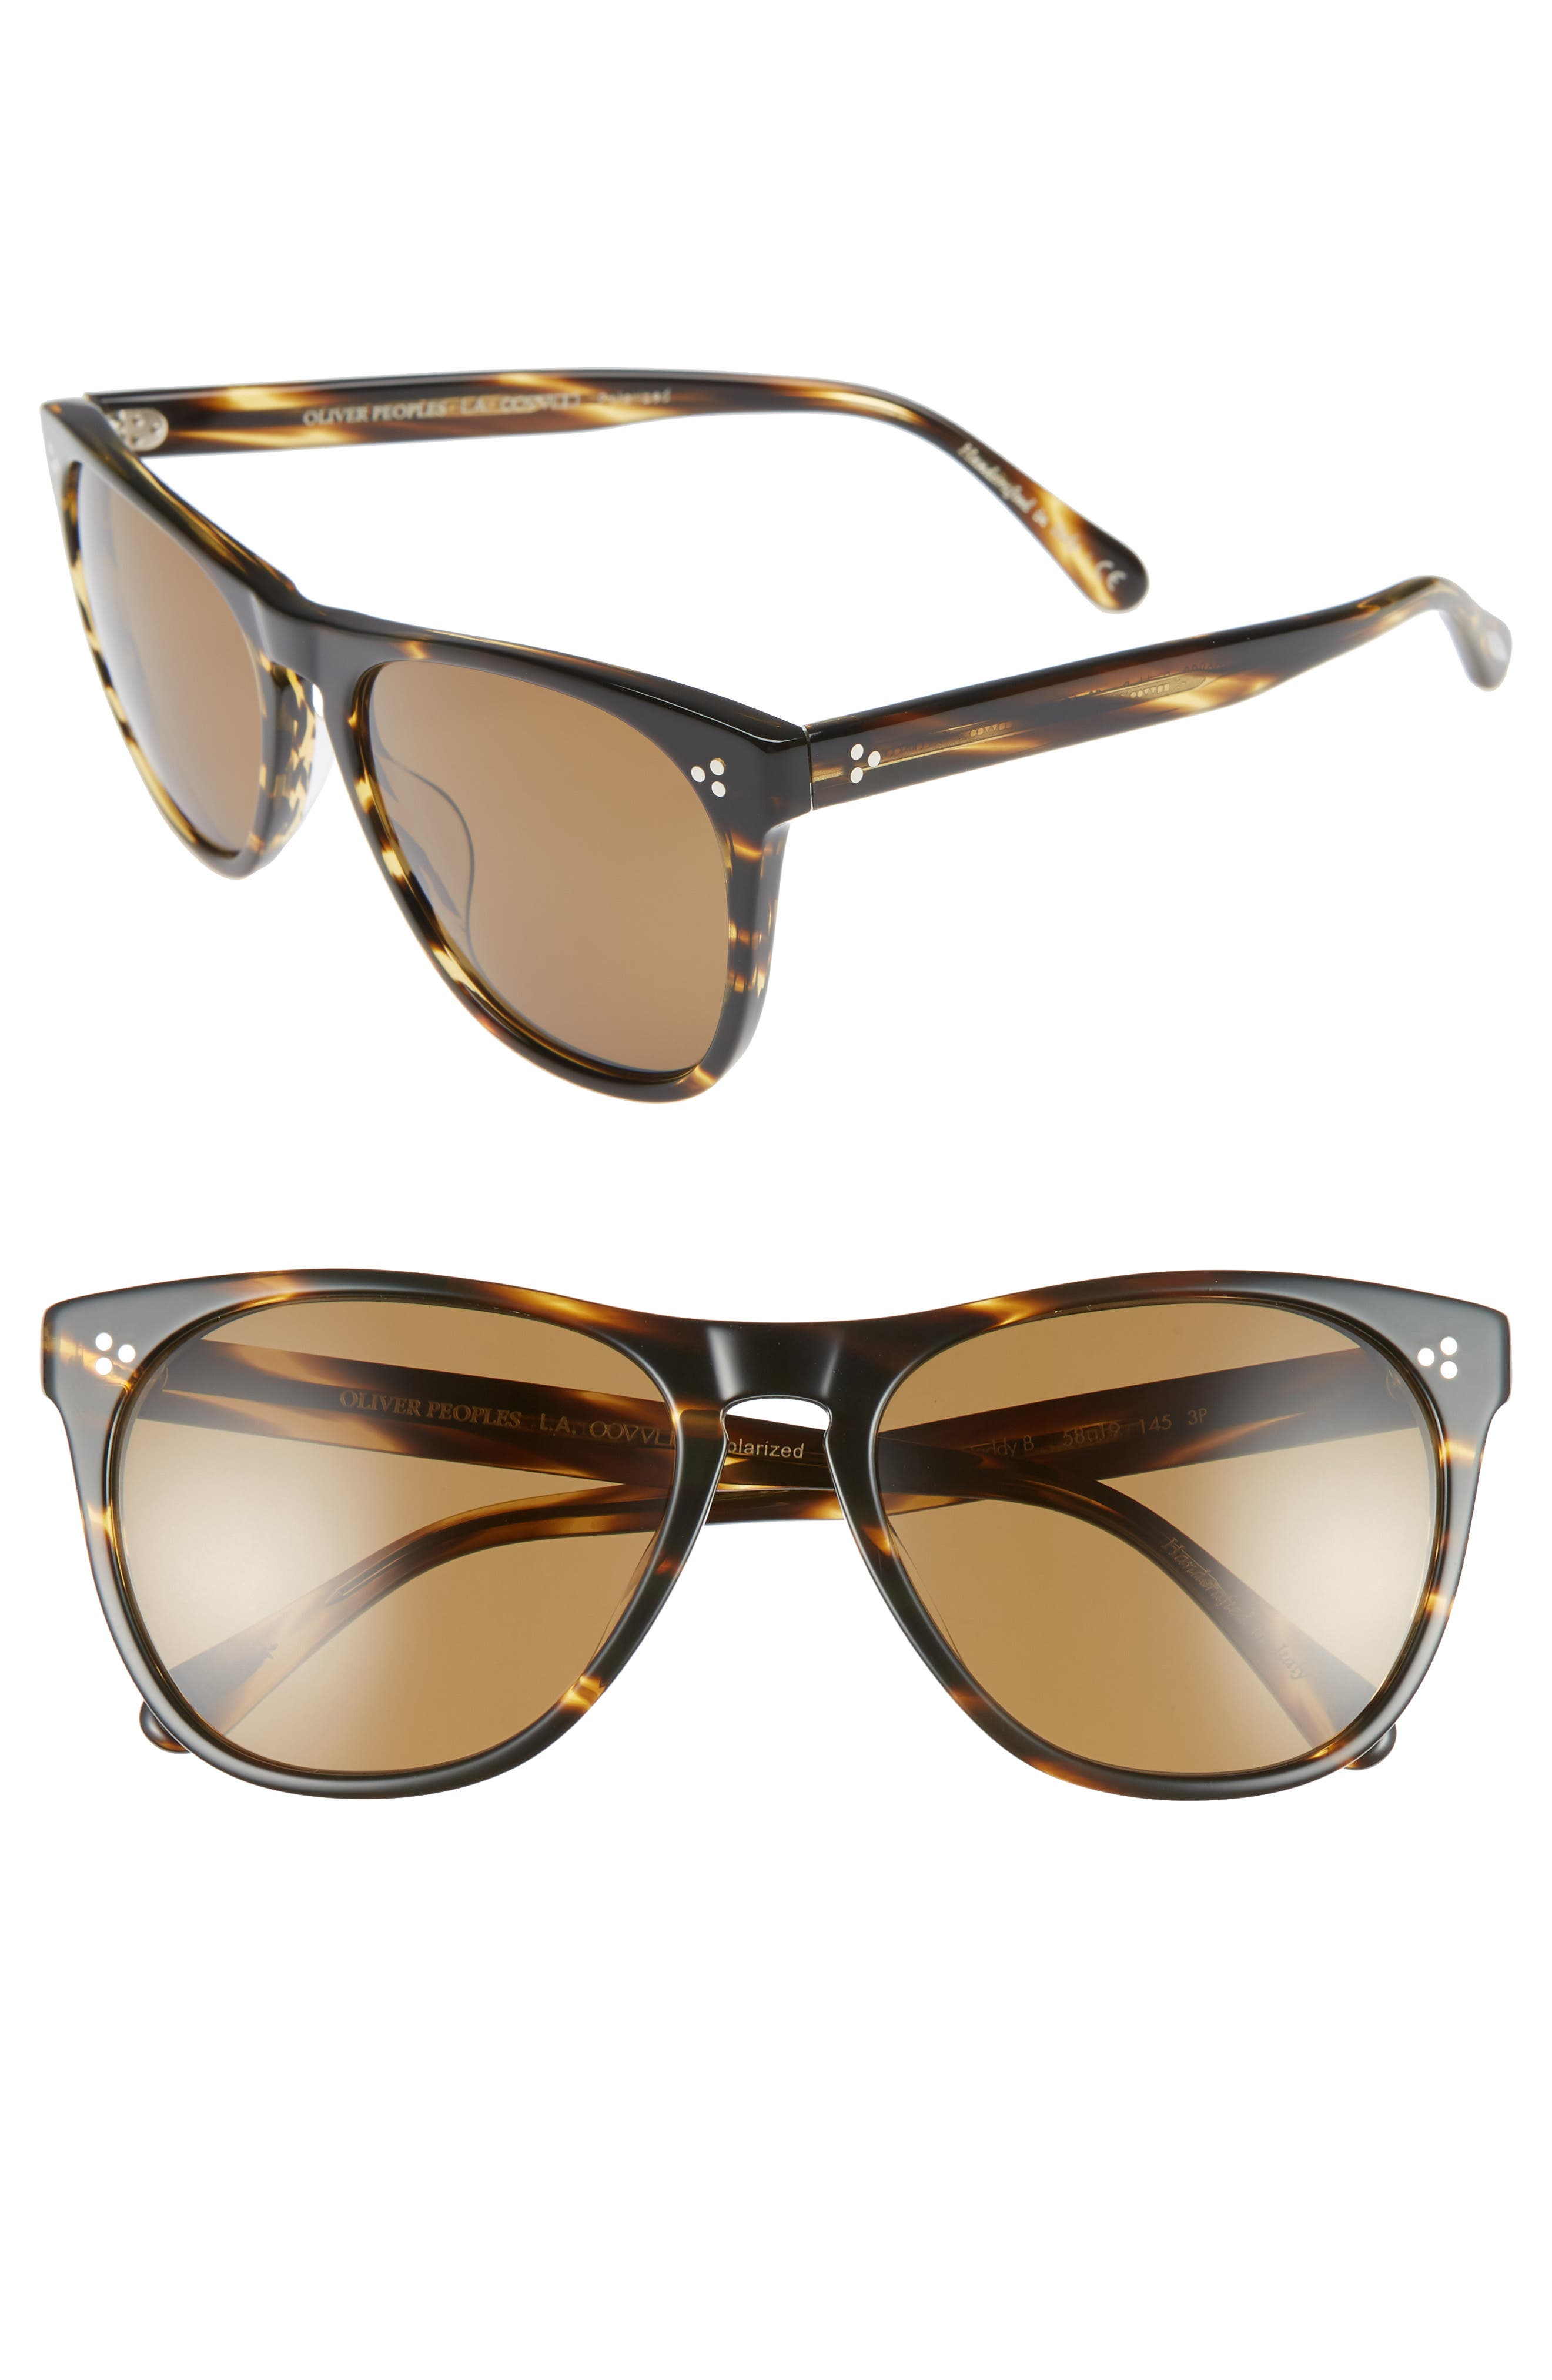 55a8d7933f30f Oliver Peoples Daddy B 58Mm Polarized Sunglasses - Cocobolo